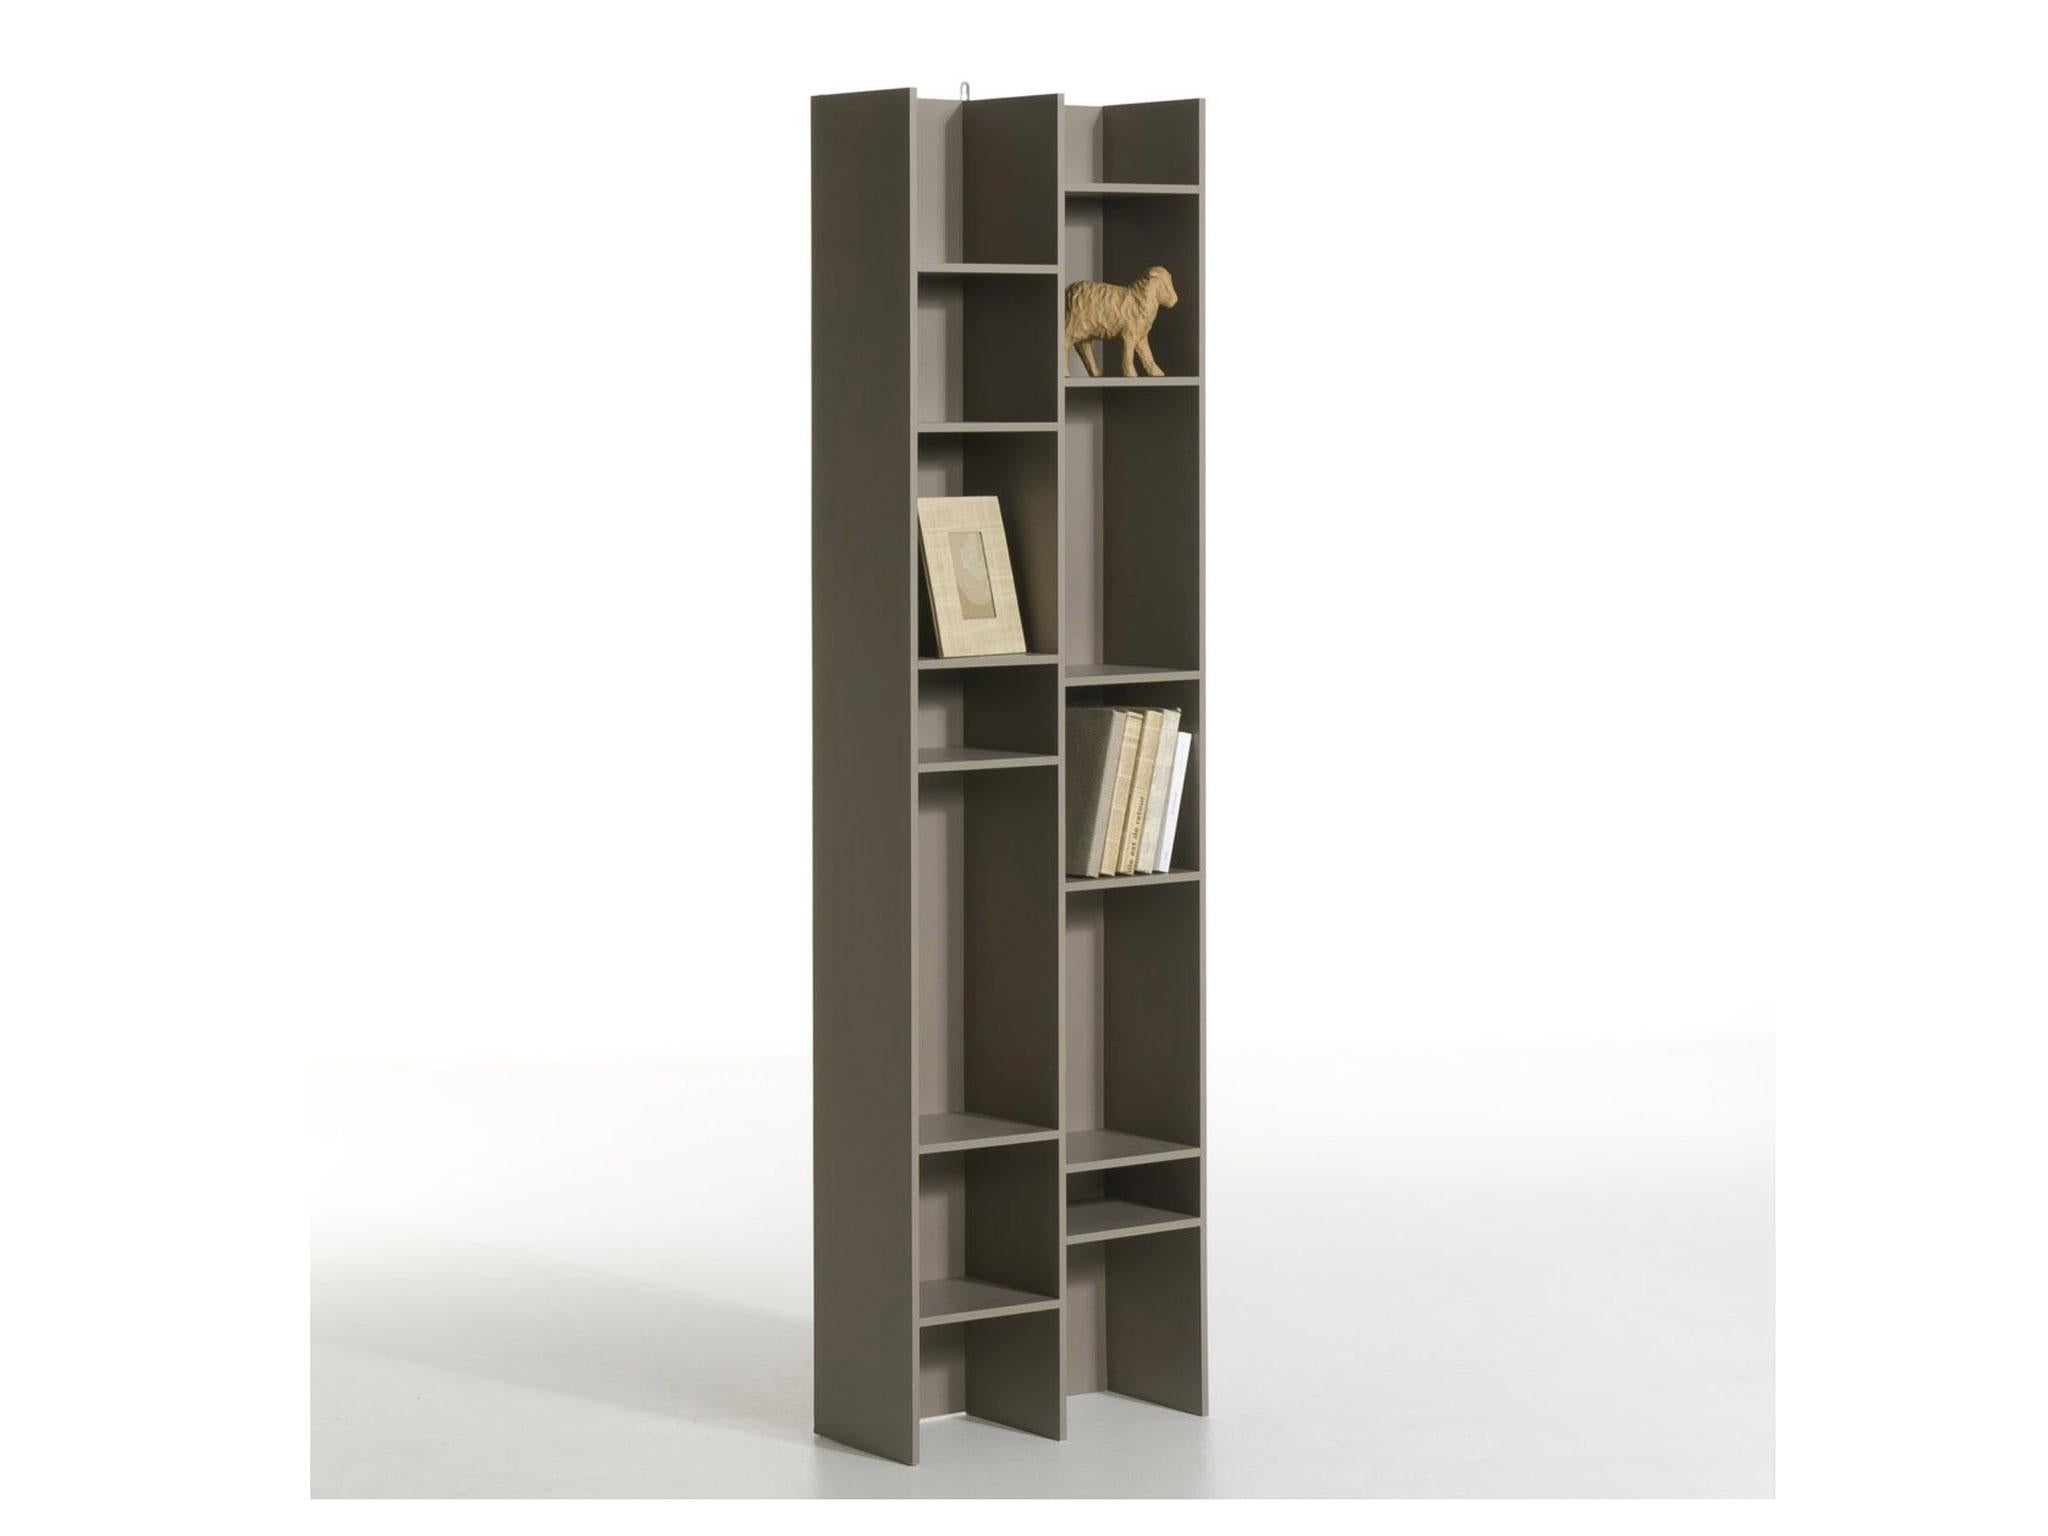 At 52cm Wide This Smart Looking Bookcase Is Good For Utilising Narrow Spaces Next To A Column Or In The Alcoves Beside Chimney Breast Perhaps